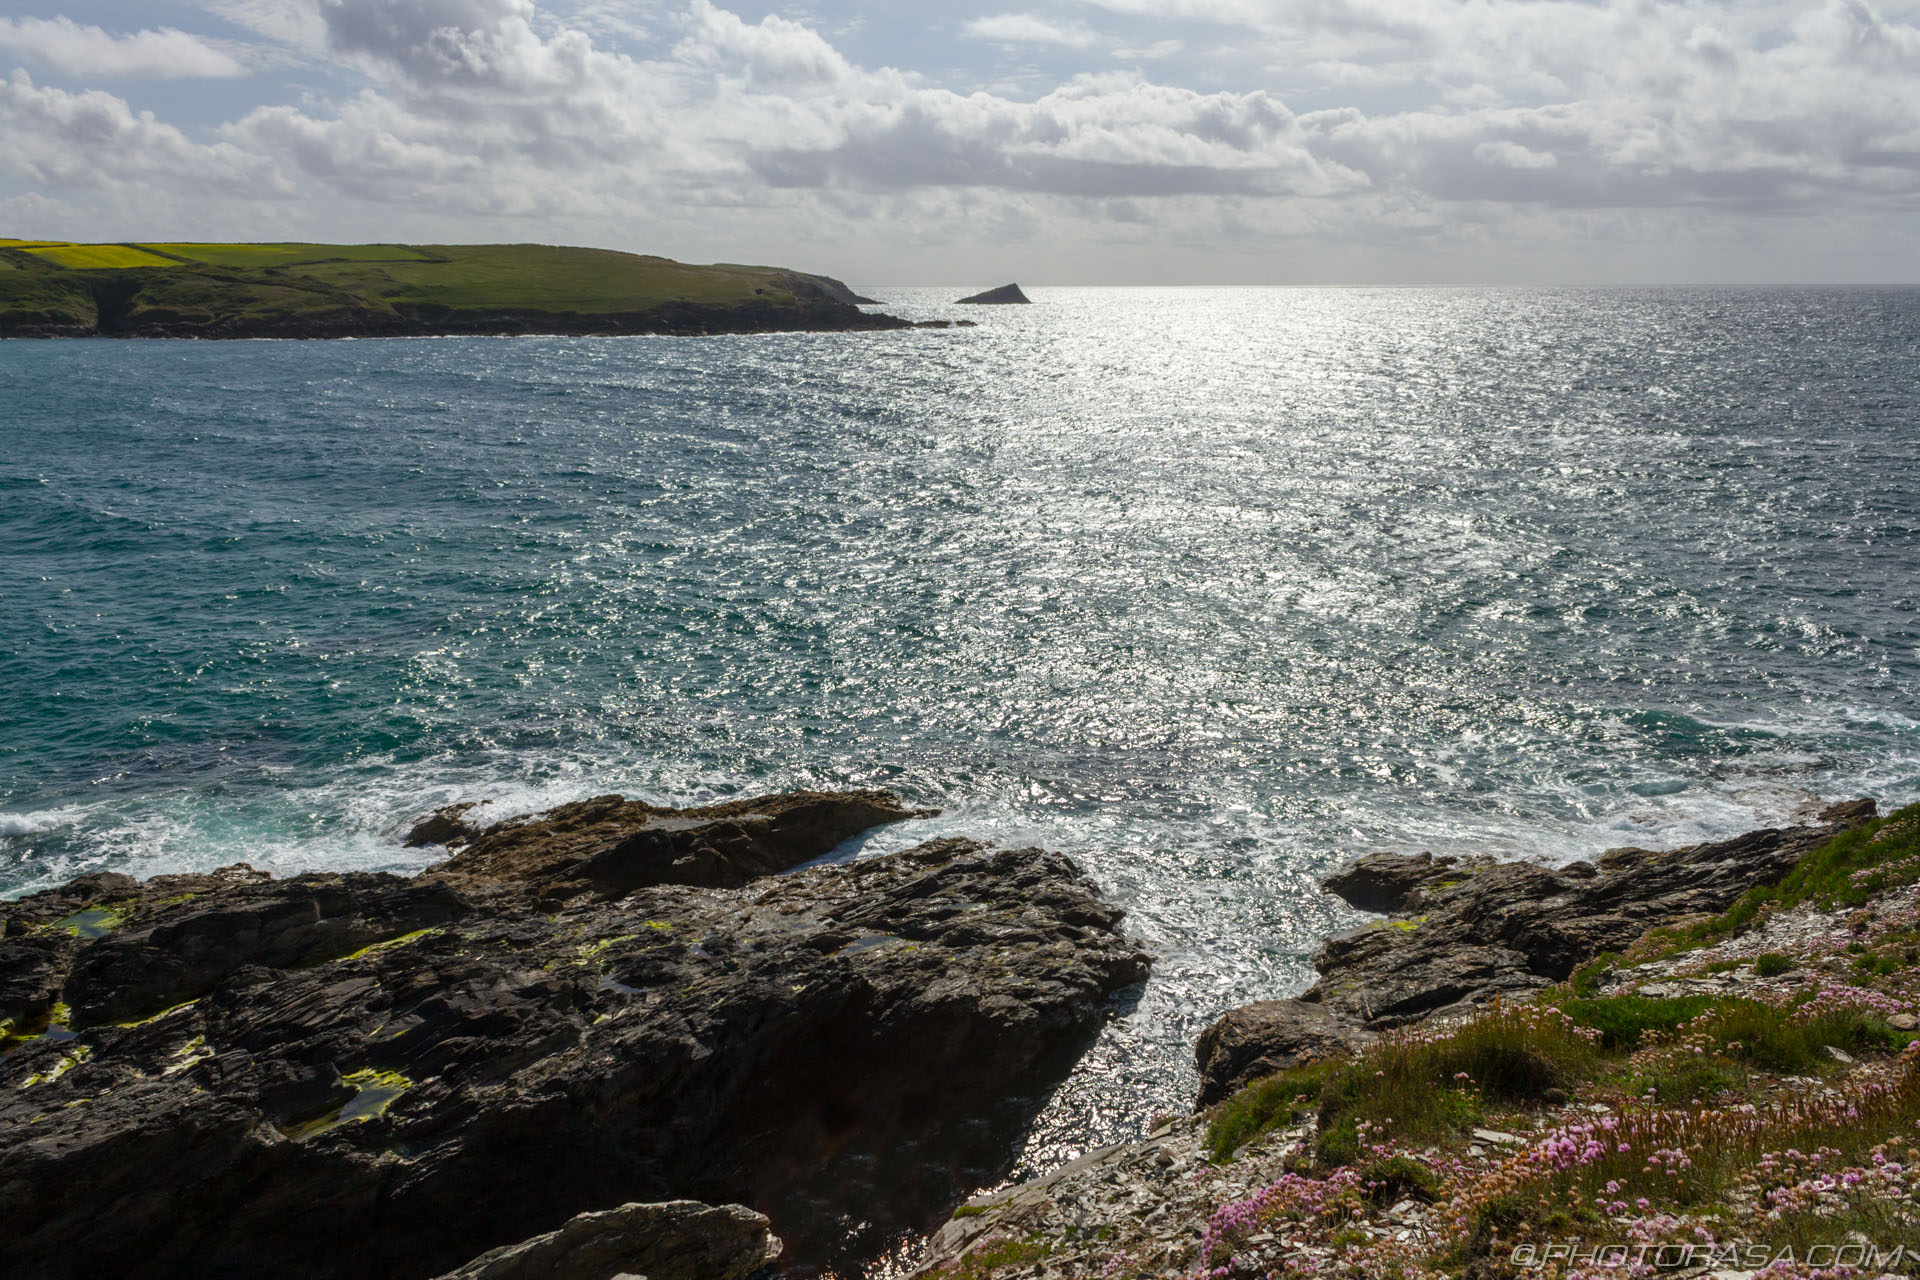 https://photorasa.com/newquay/tip-of-west-pentire-from-pentire-peninsula/